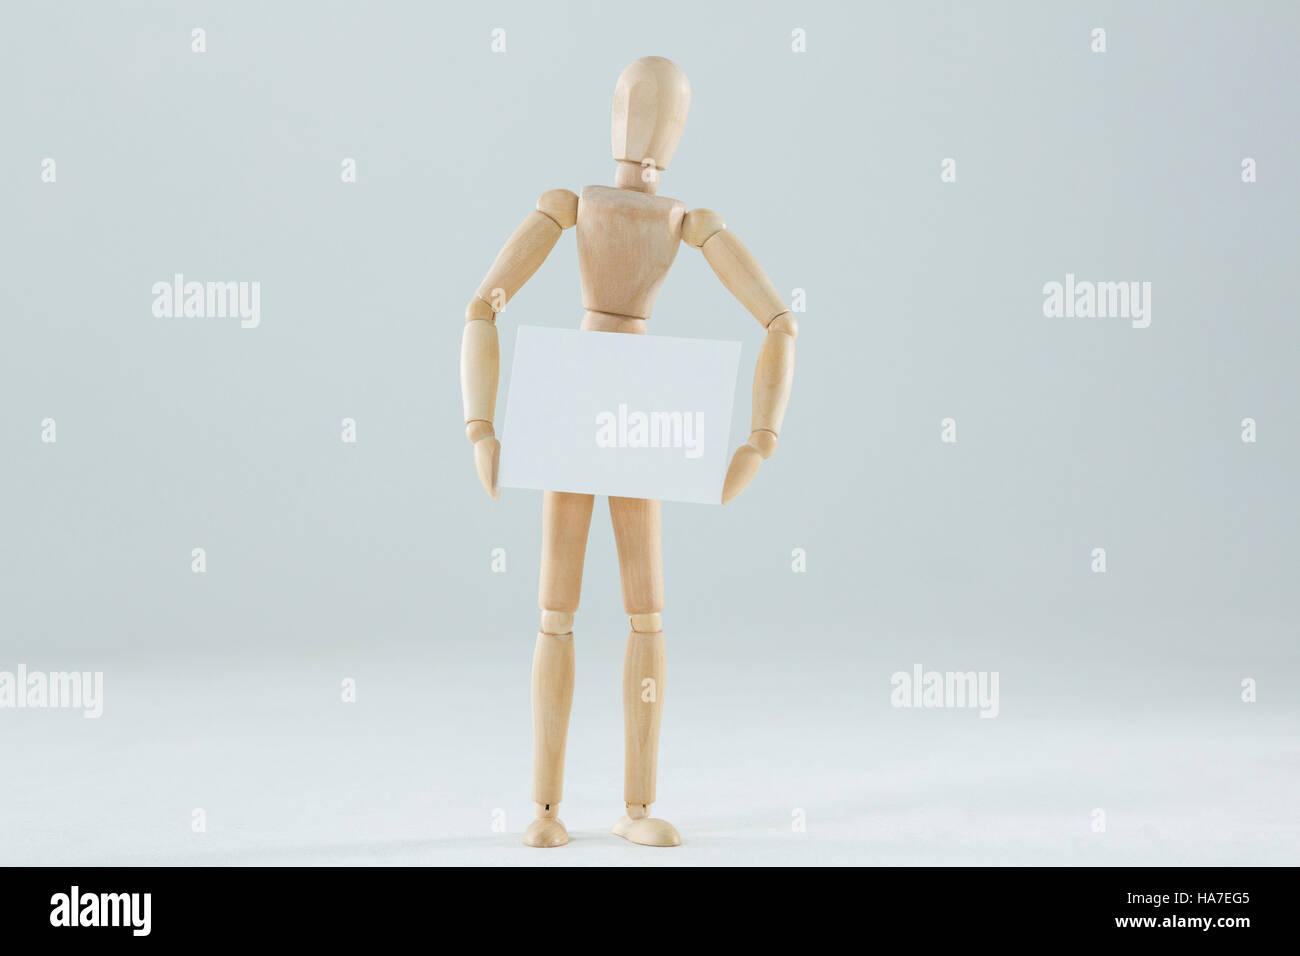 Wooden figurine holding blank placard - Stock Image